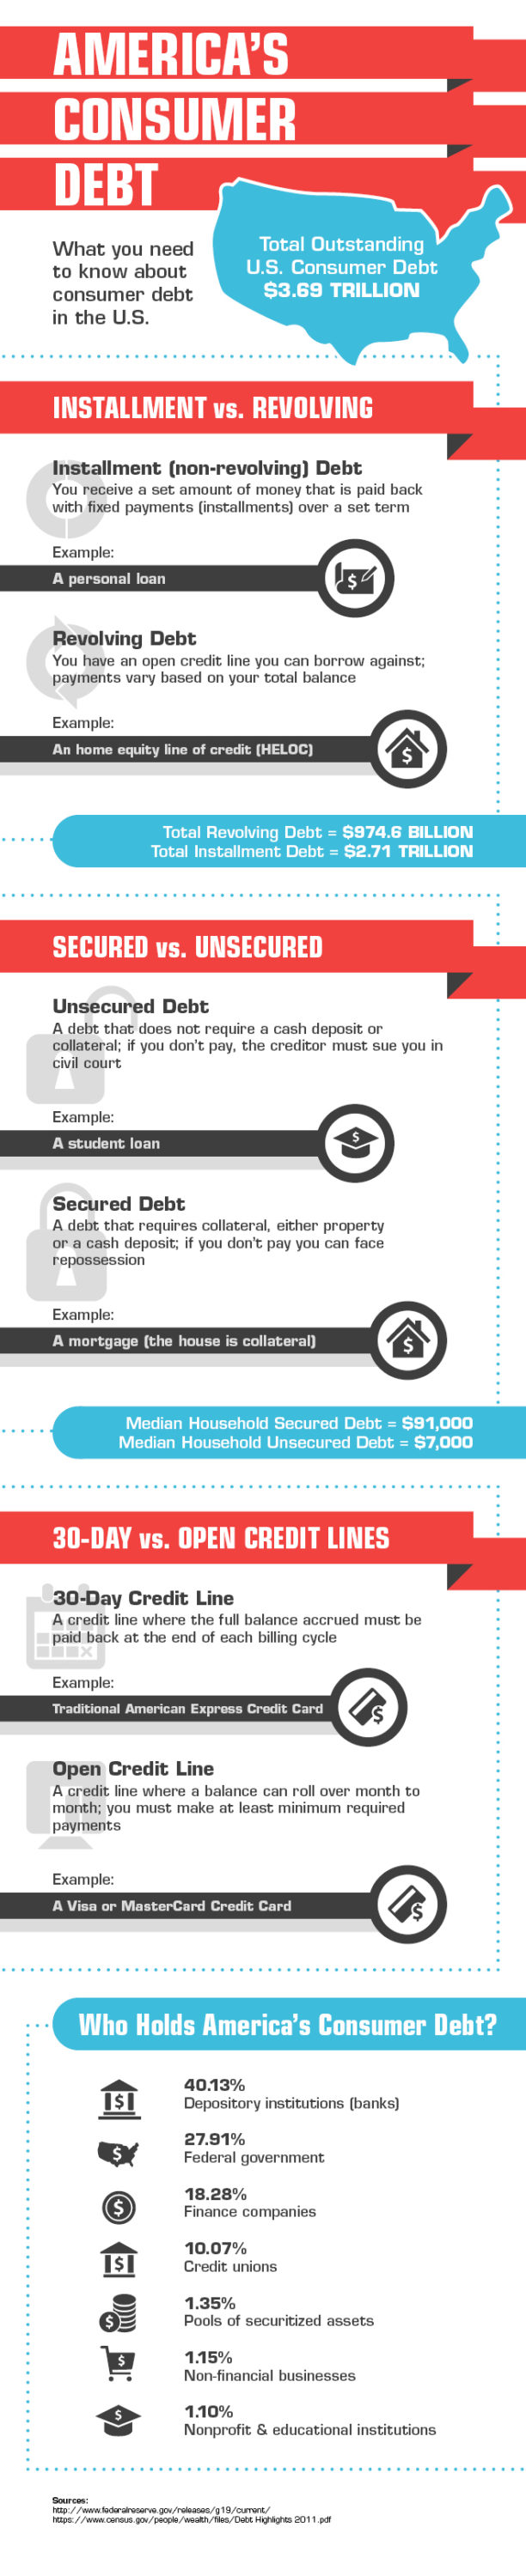 Infographic showing the types of consumer debt